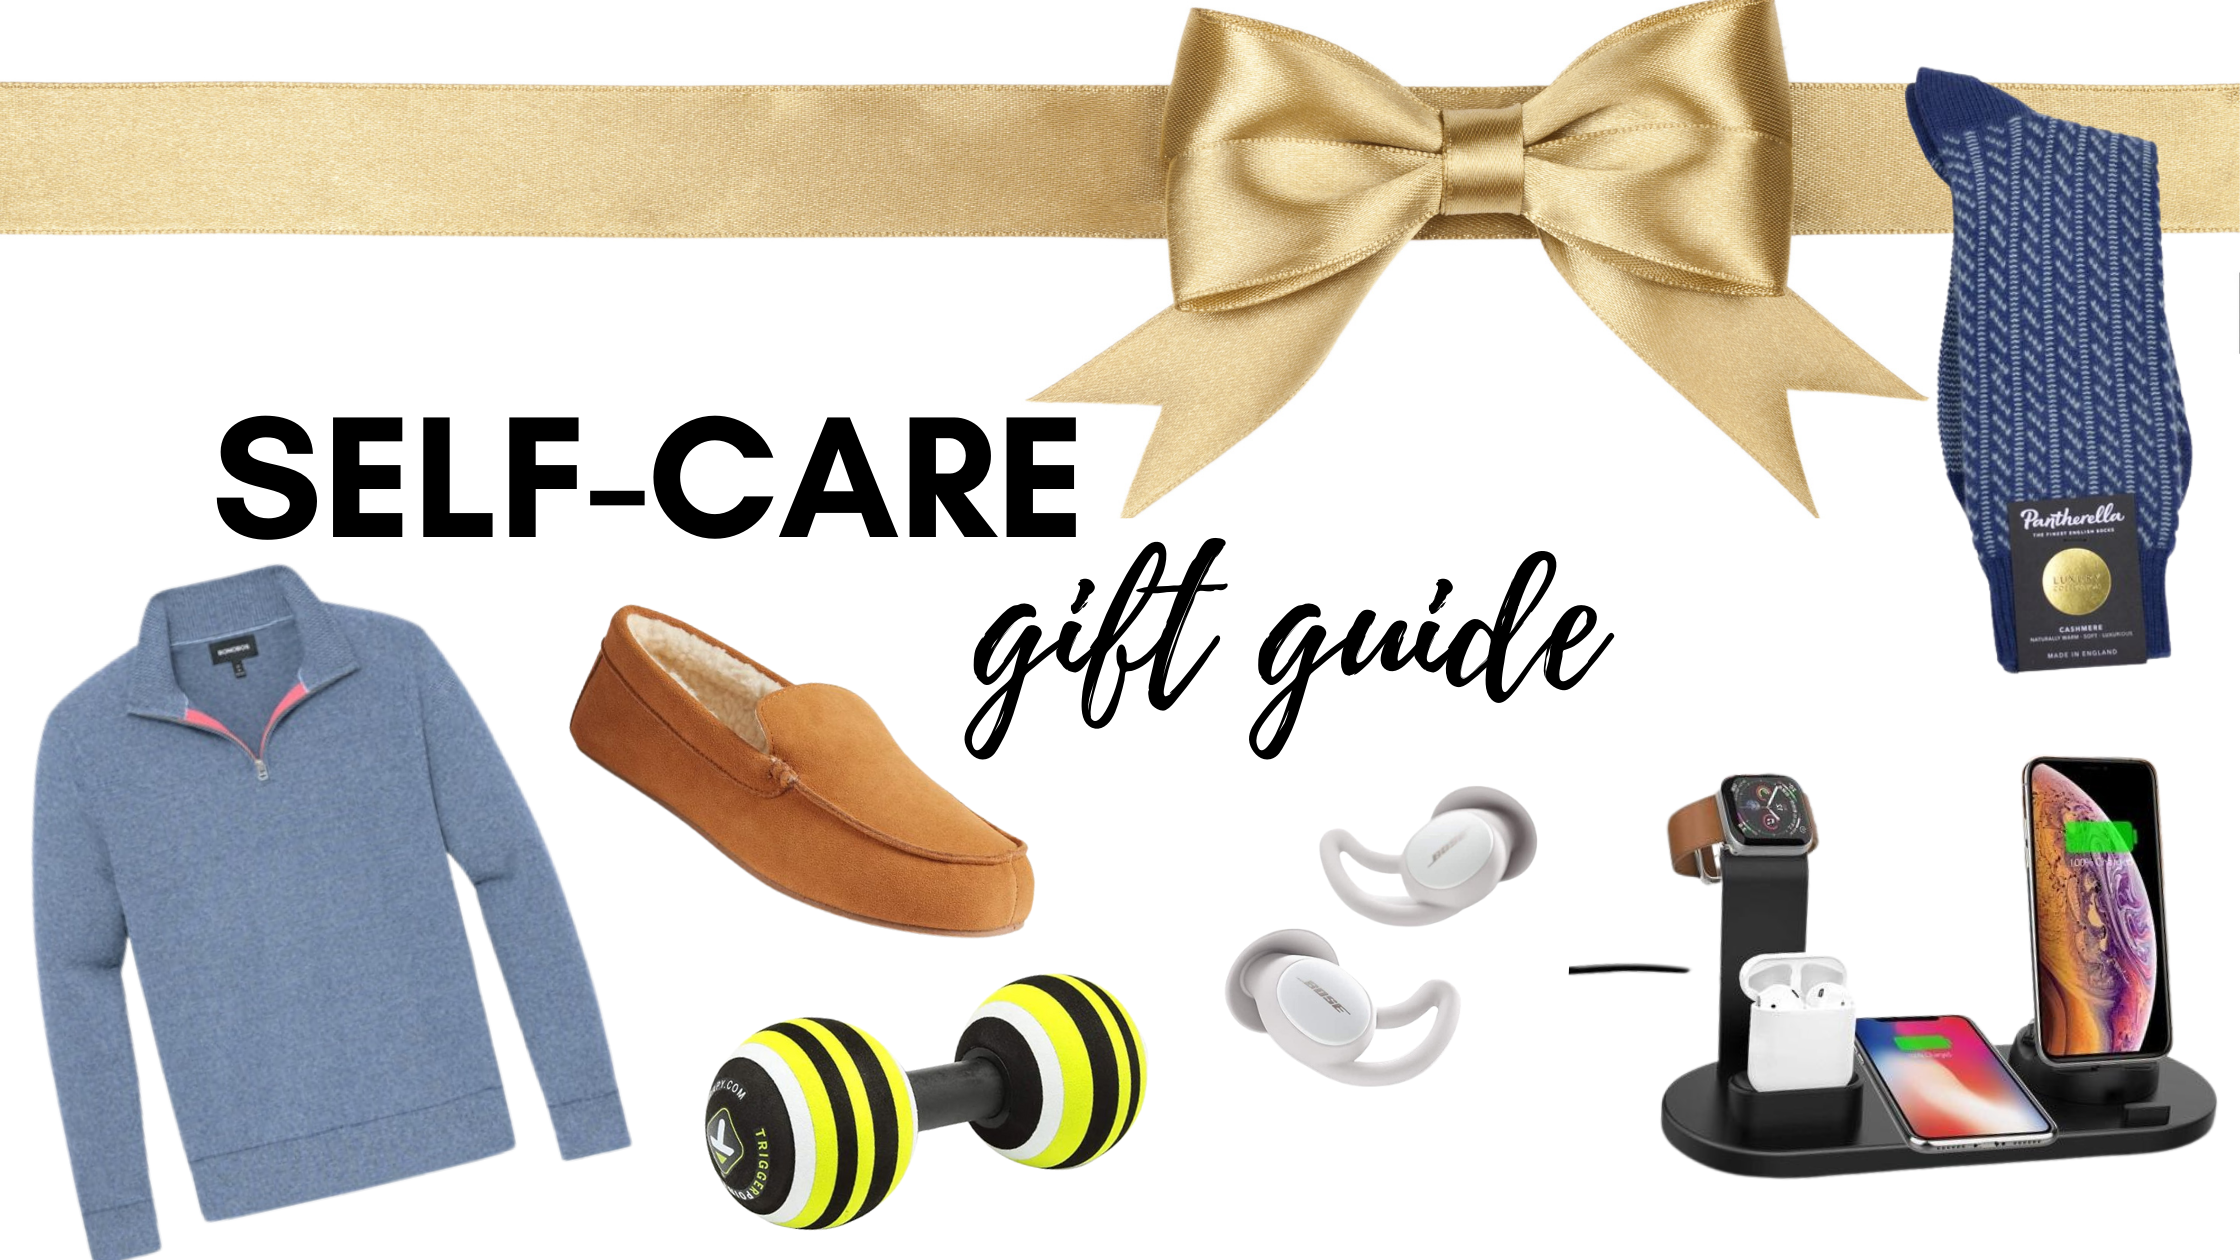 2020 men's self-care holiday gift guide